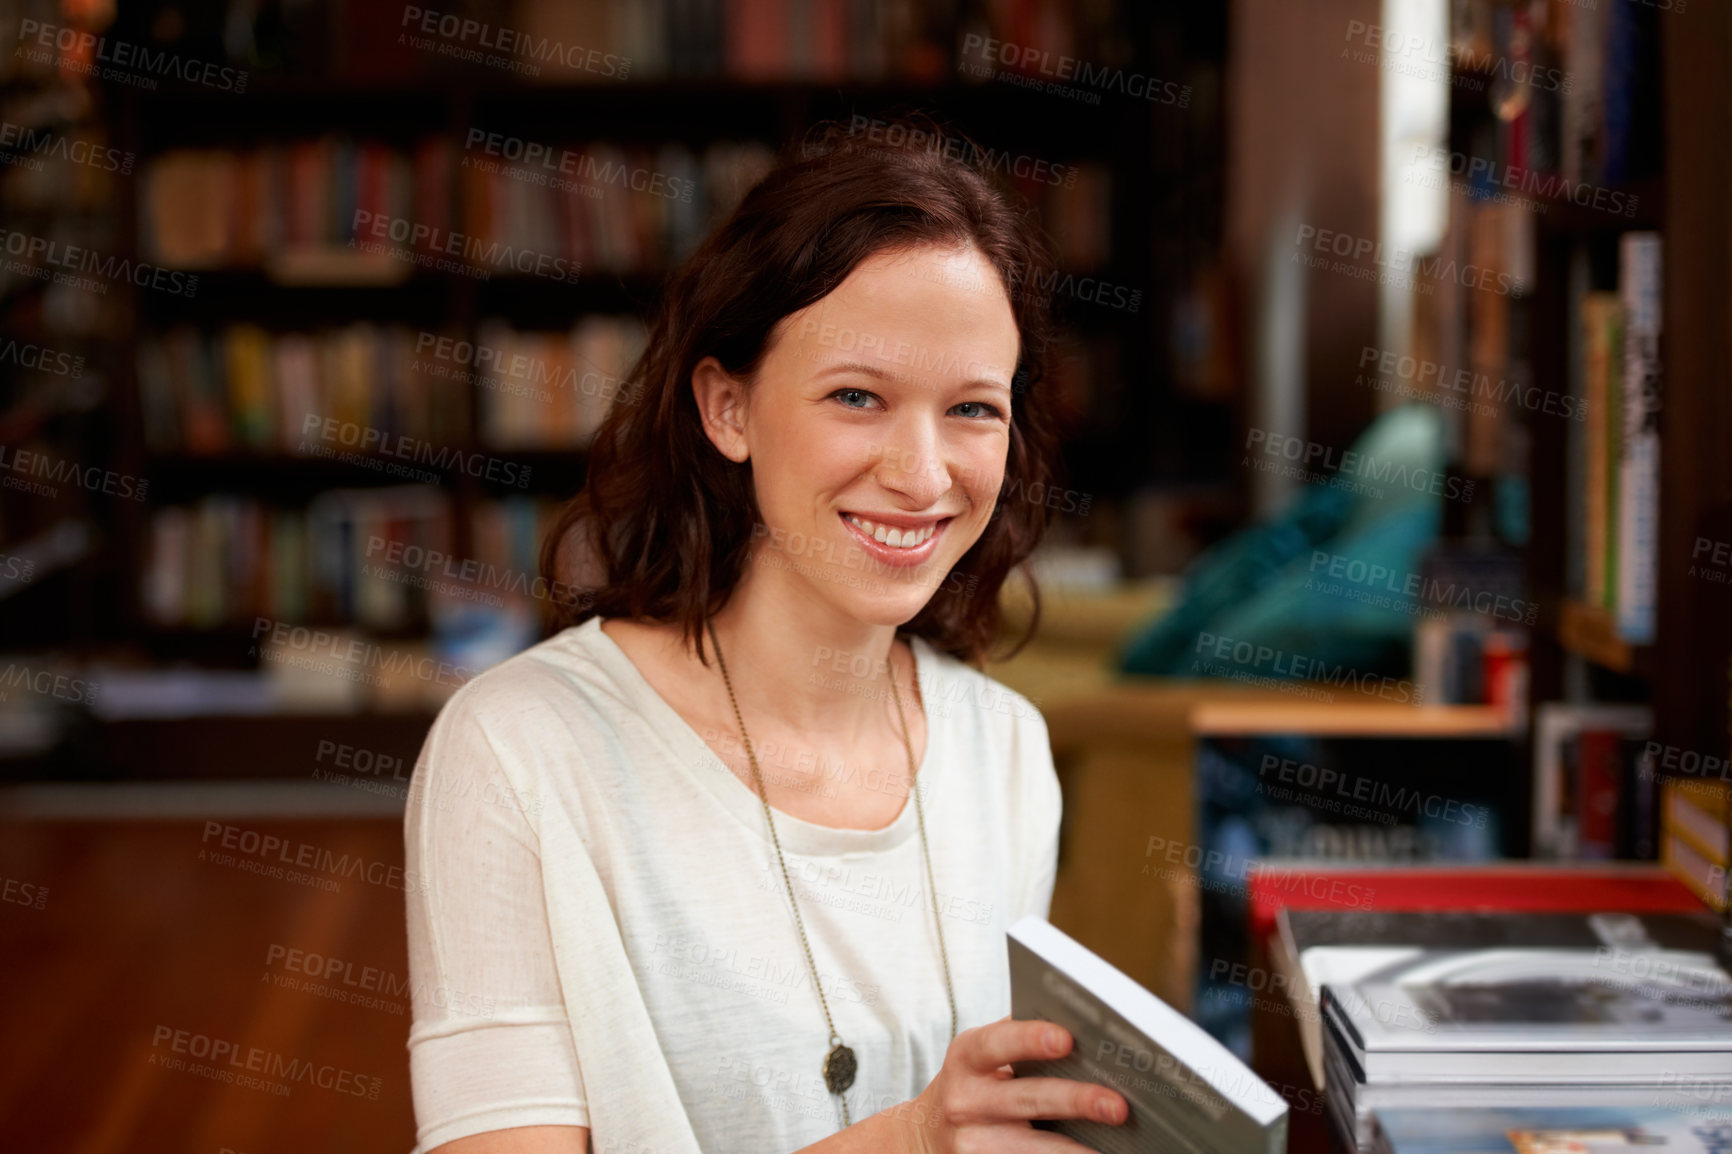 Buy stock photo Portrait of a young woman smiling happily while browsing in a bookstore